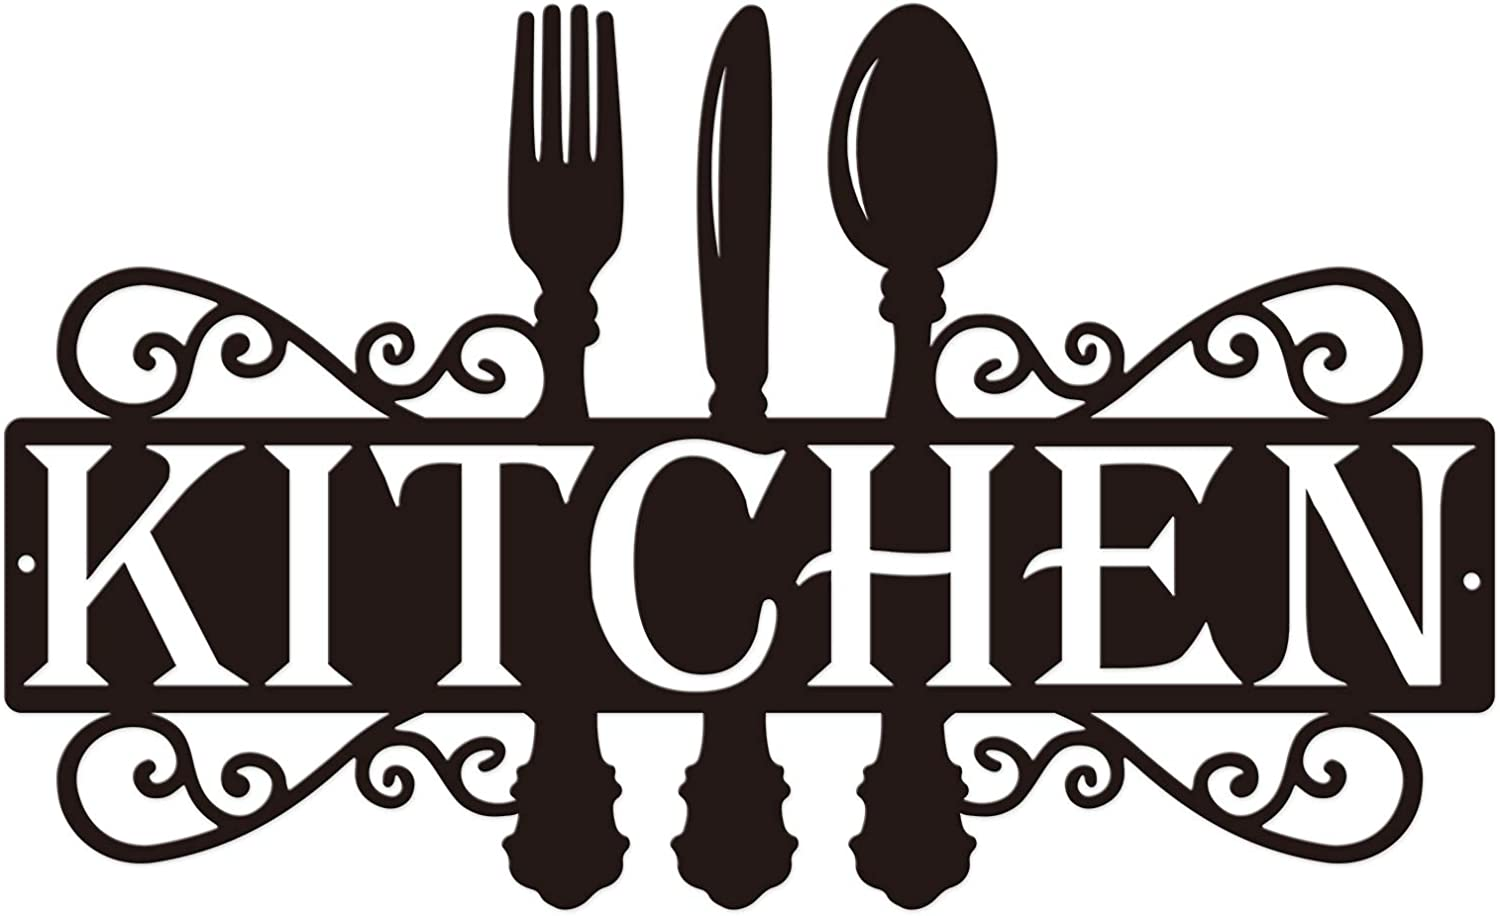 Kitchen Metal Sign - 14 X 8.5 Inches   Dining Room Wall Decor Kitchen Wall Art Farmhouse Cooking Gift Housewarming Gift